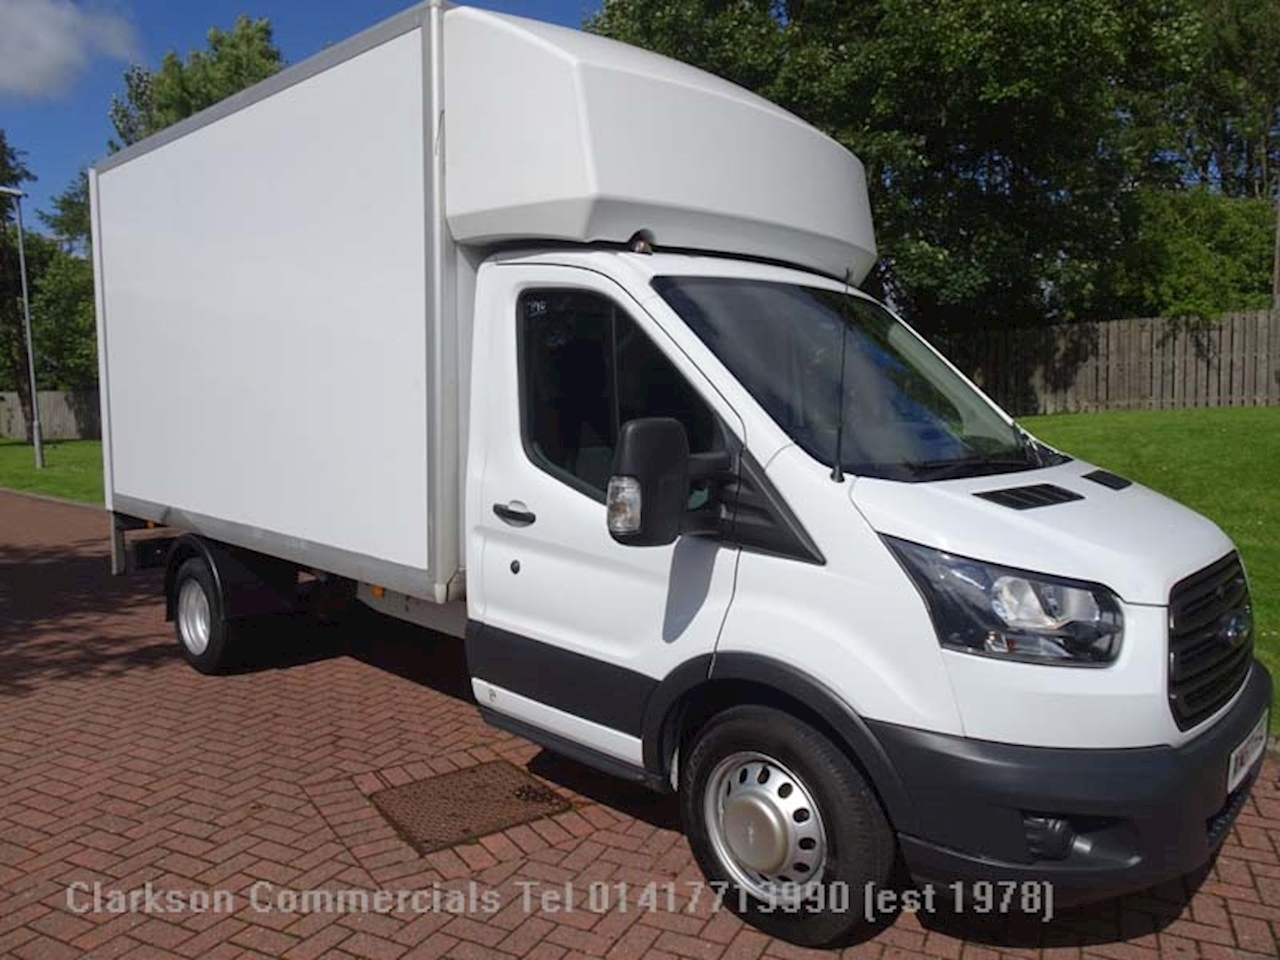 Ford Transit 350 2.0TDCi / 130ps L3 LWB GRP luton with 500kg tallift 2.0 Luton Van Manual Diesel